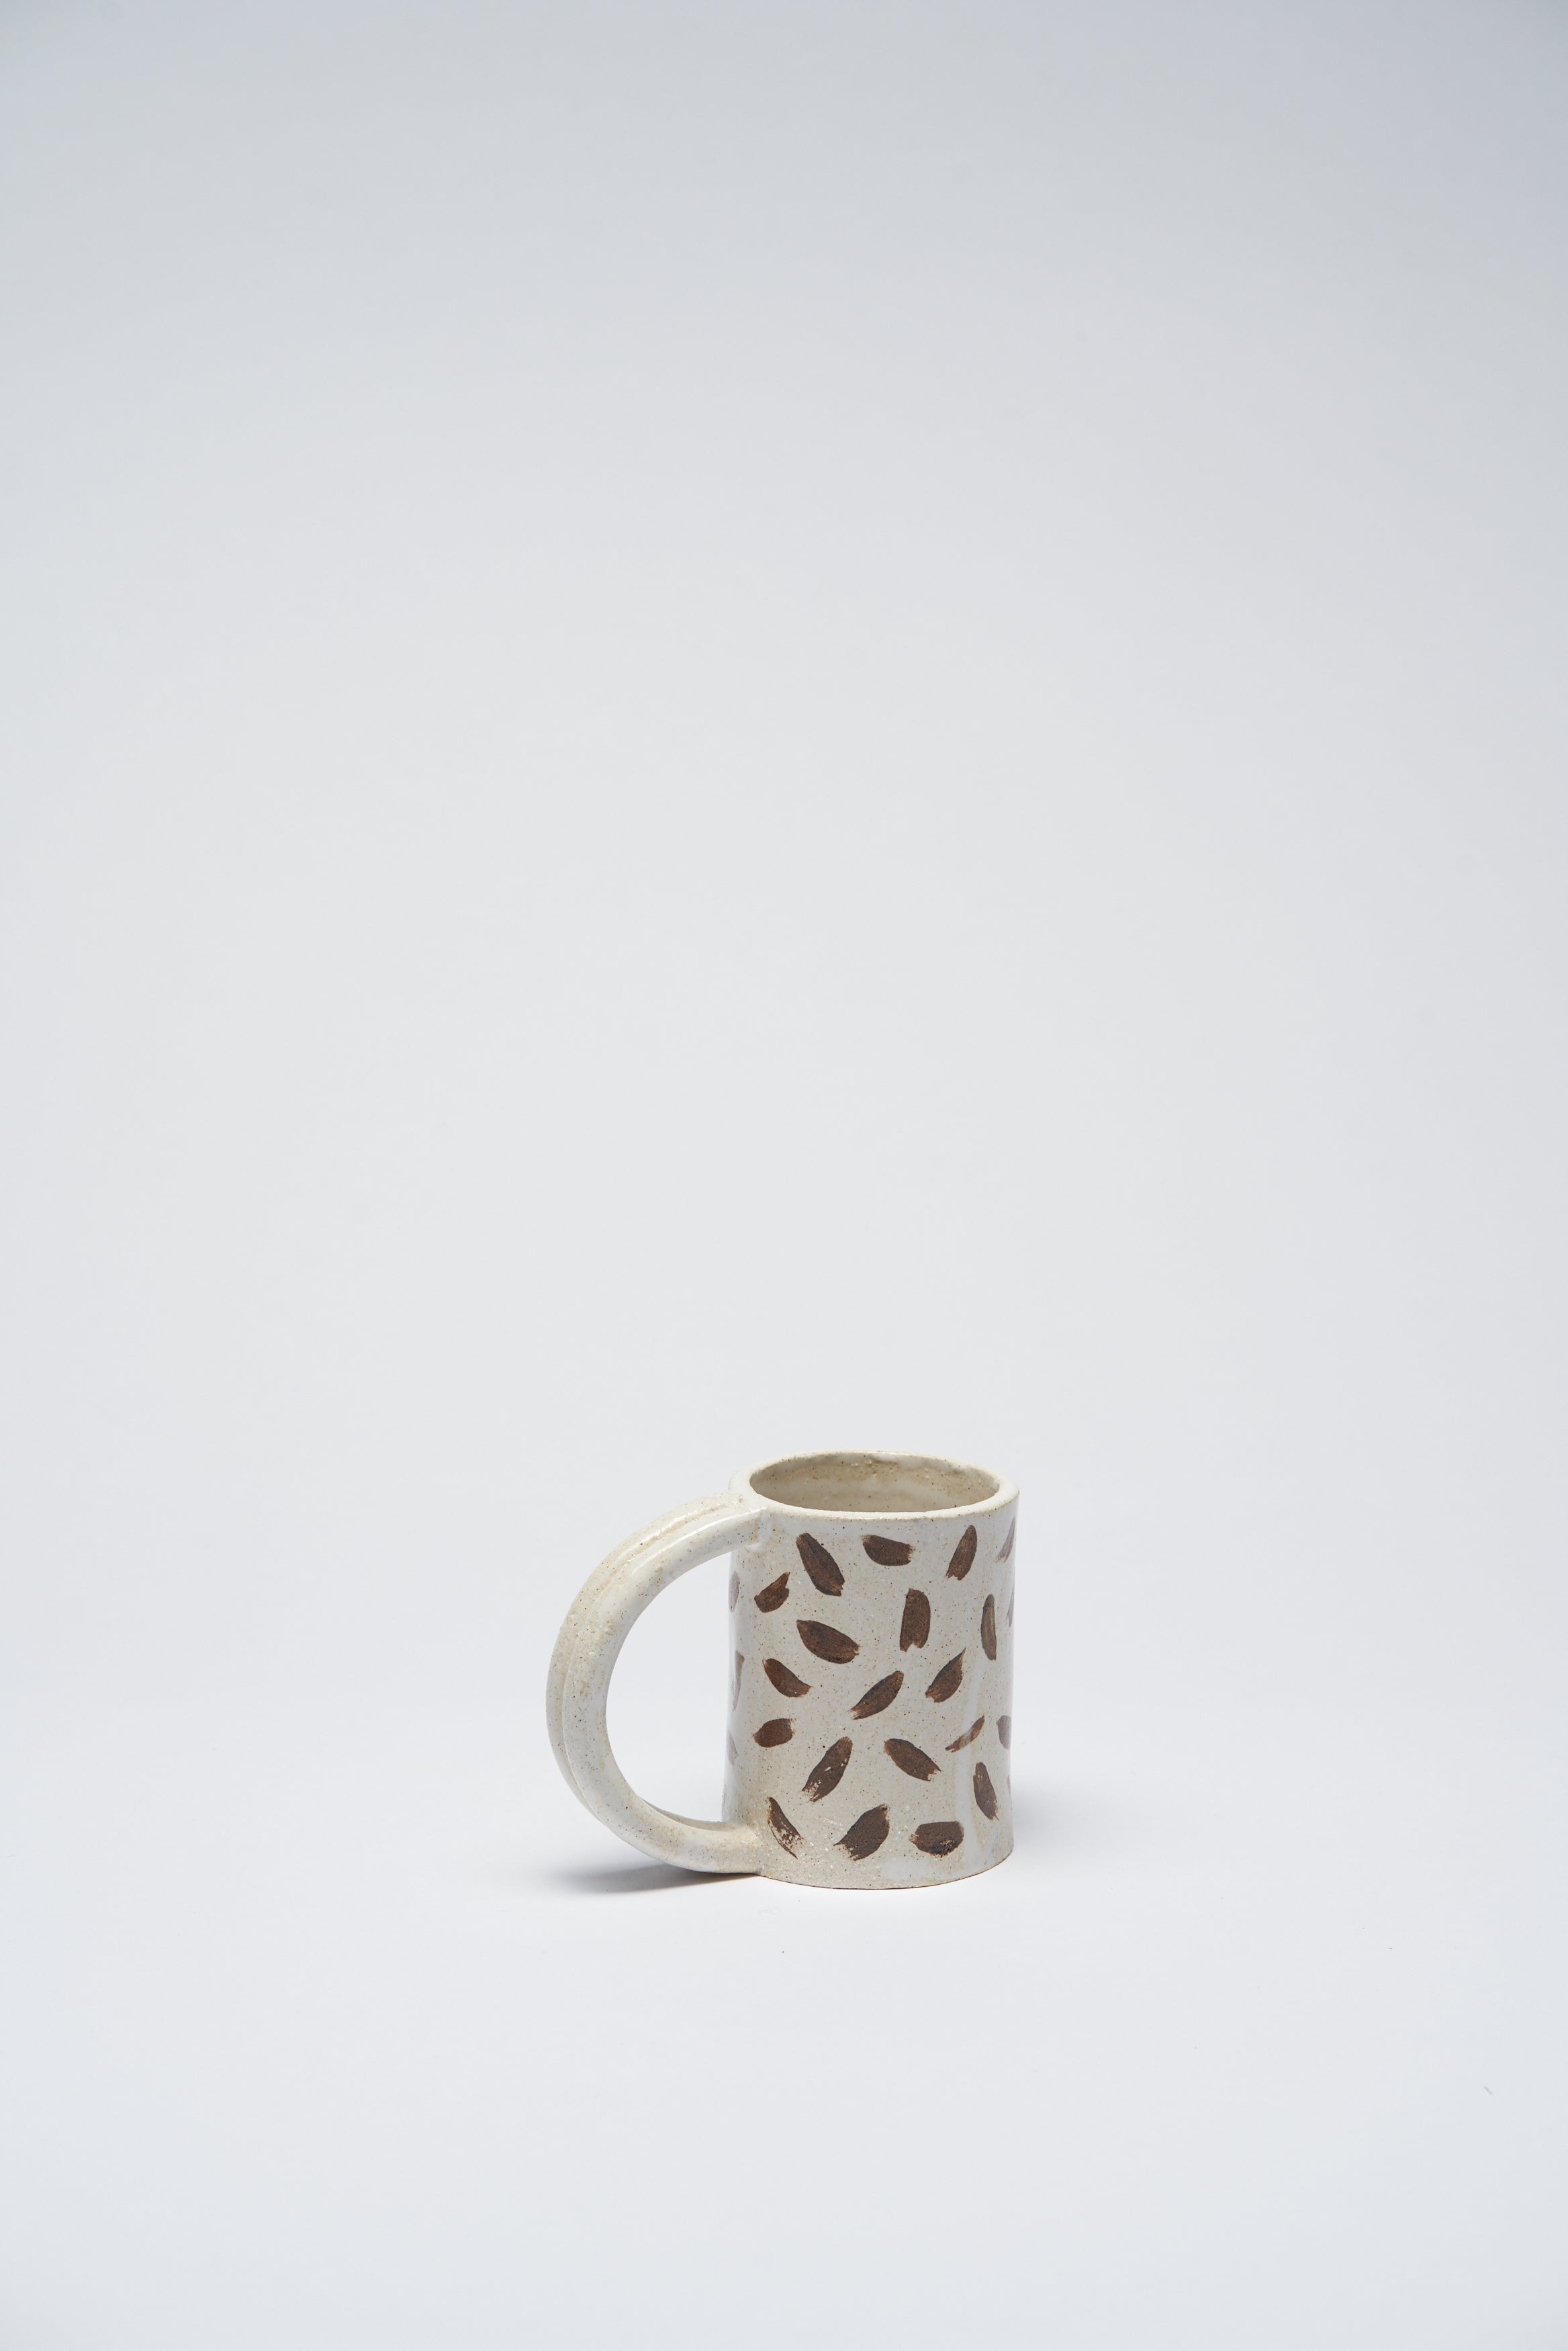 MUG AUTOMNAL de SUPER CERAMICS / PIECE UNIQUE EXCLUSIVE